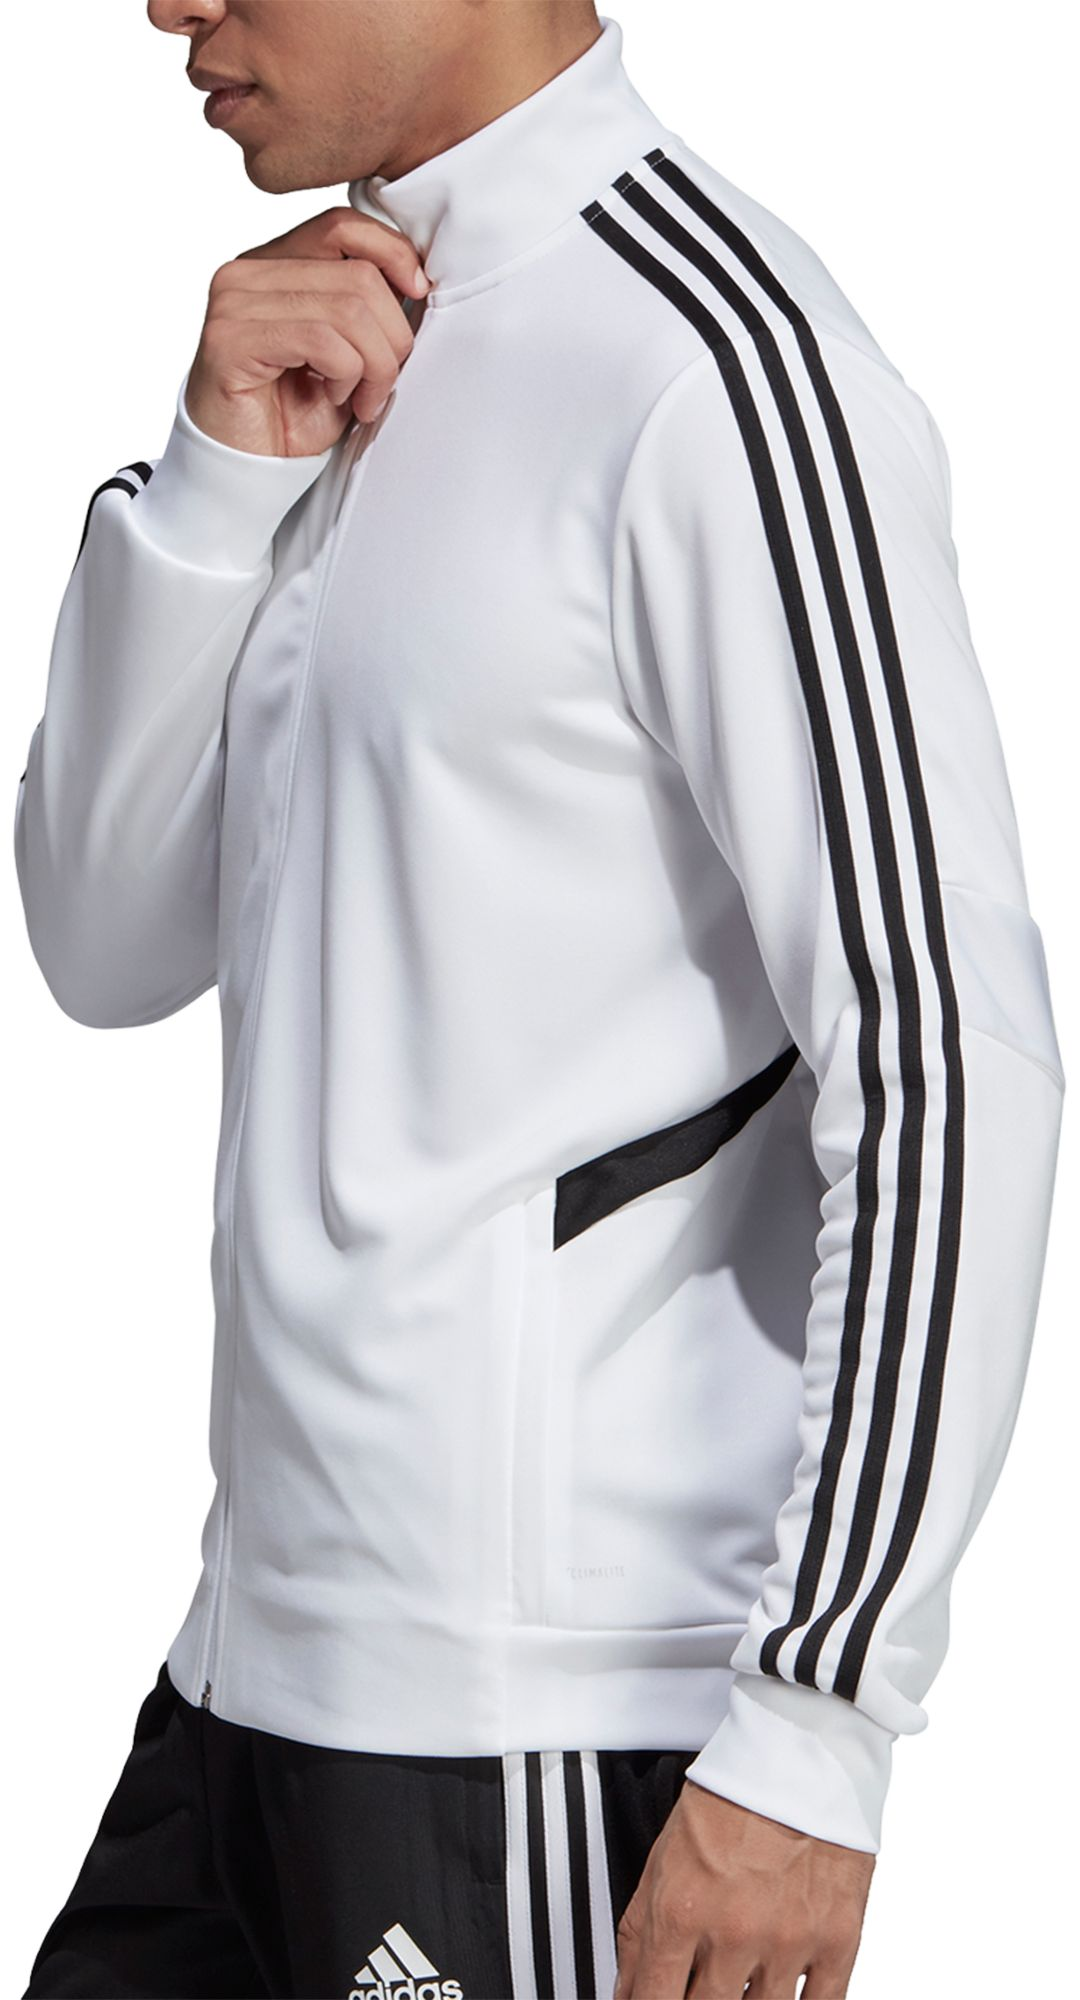 89d60fd26 adidas Men's Tiro 19 Soccer Training Jacket | DICK'S Sporting Goods